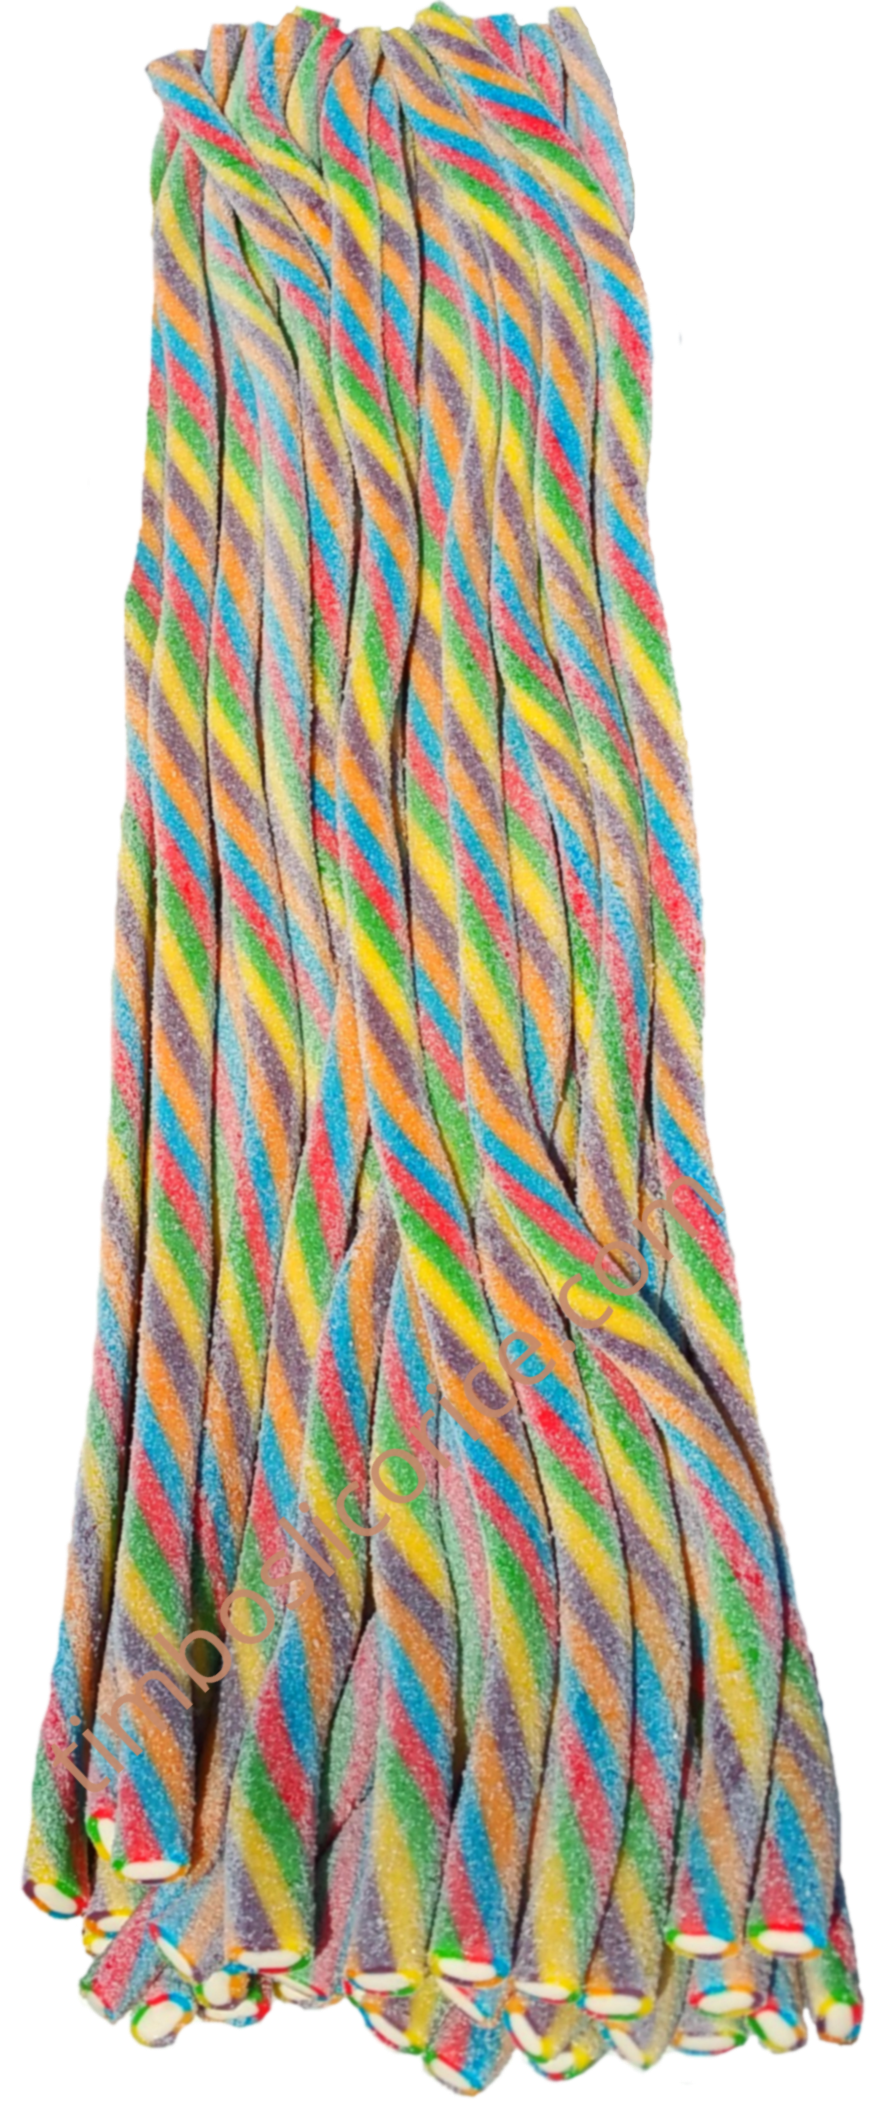 Sour Licorice Ropes